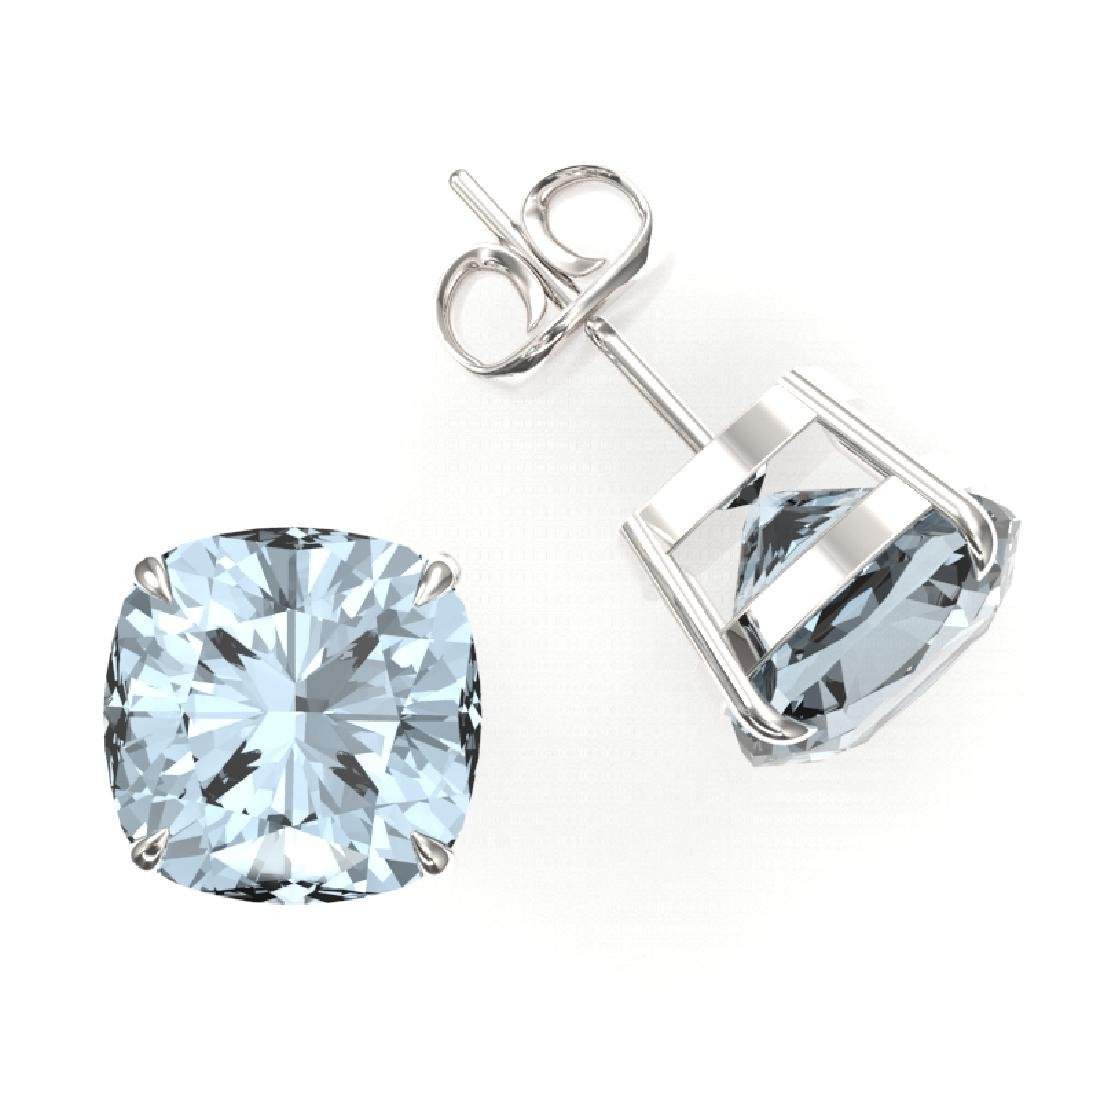 9 CTW Cushion Cut Aquamarine Inspired Solitaire Stud - 2